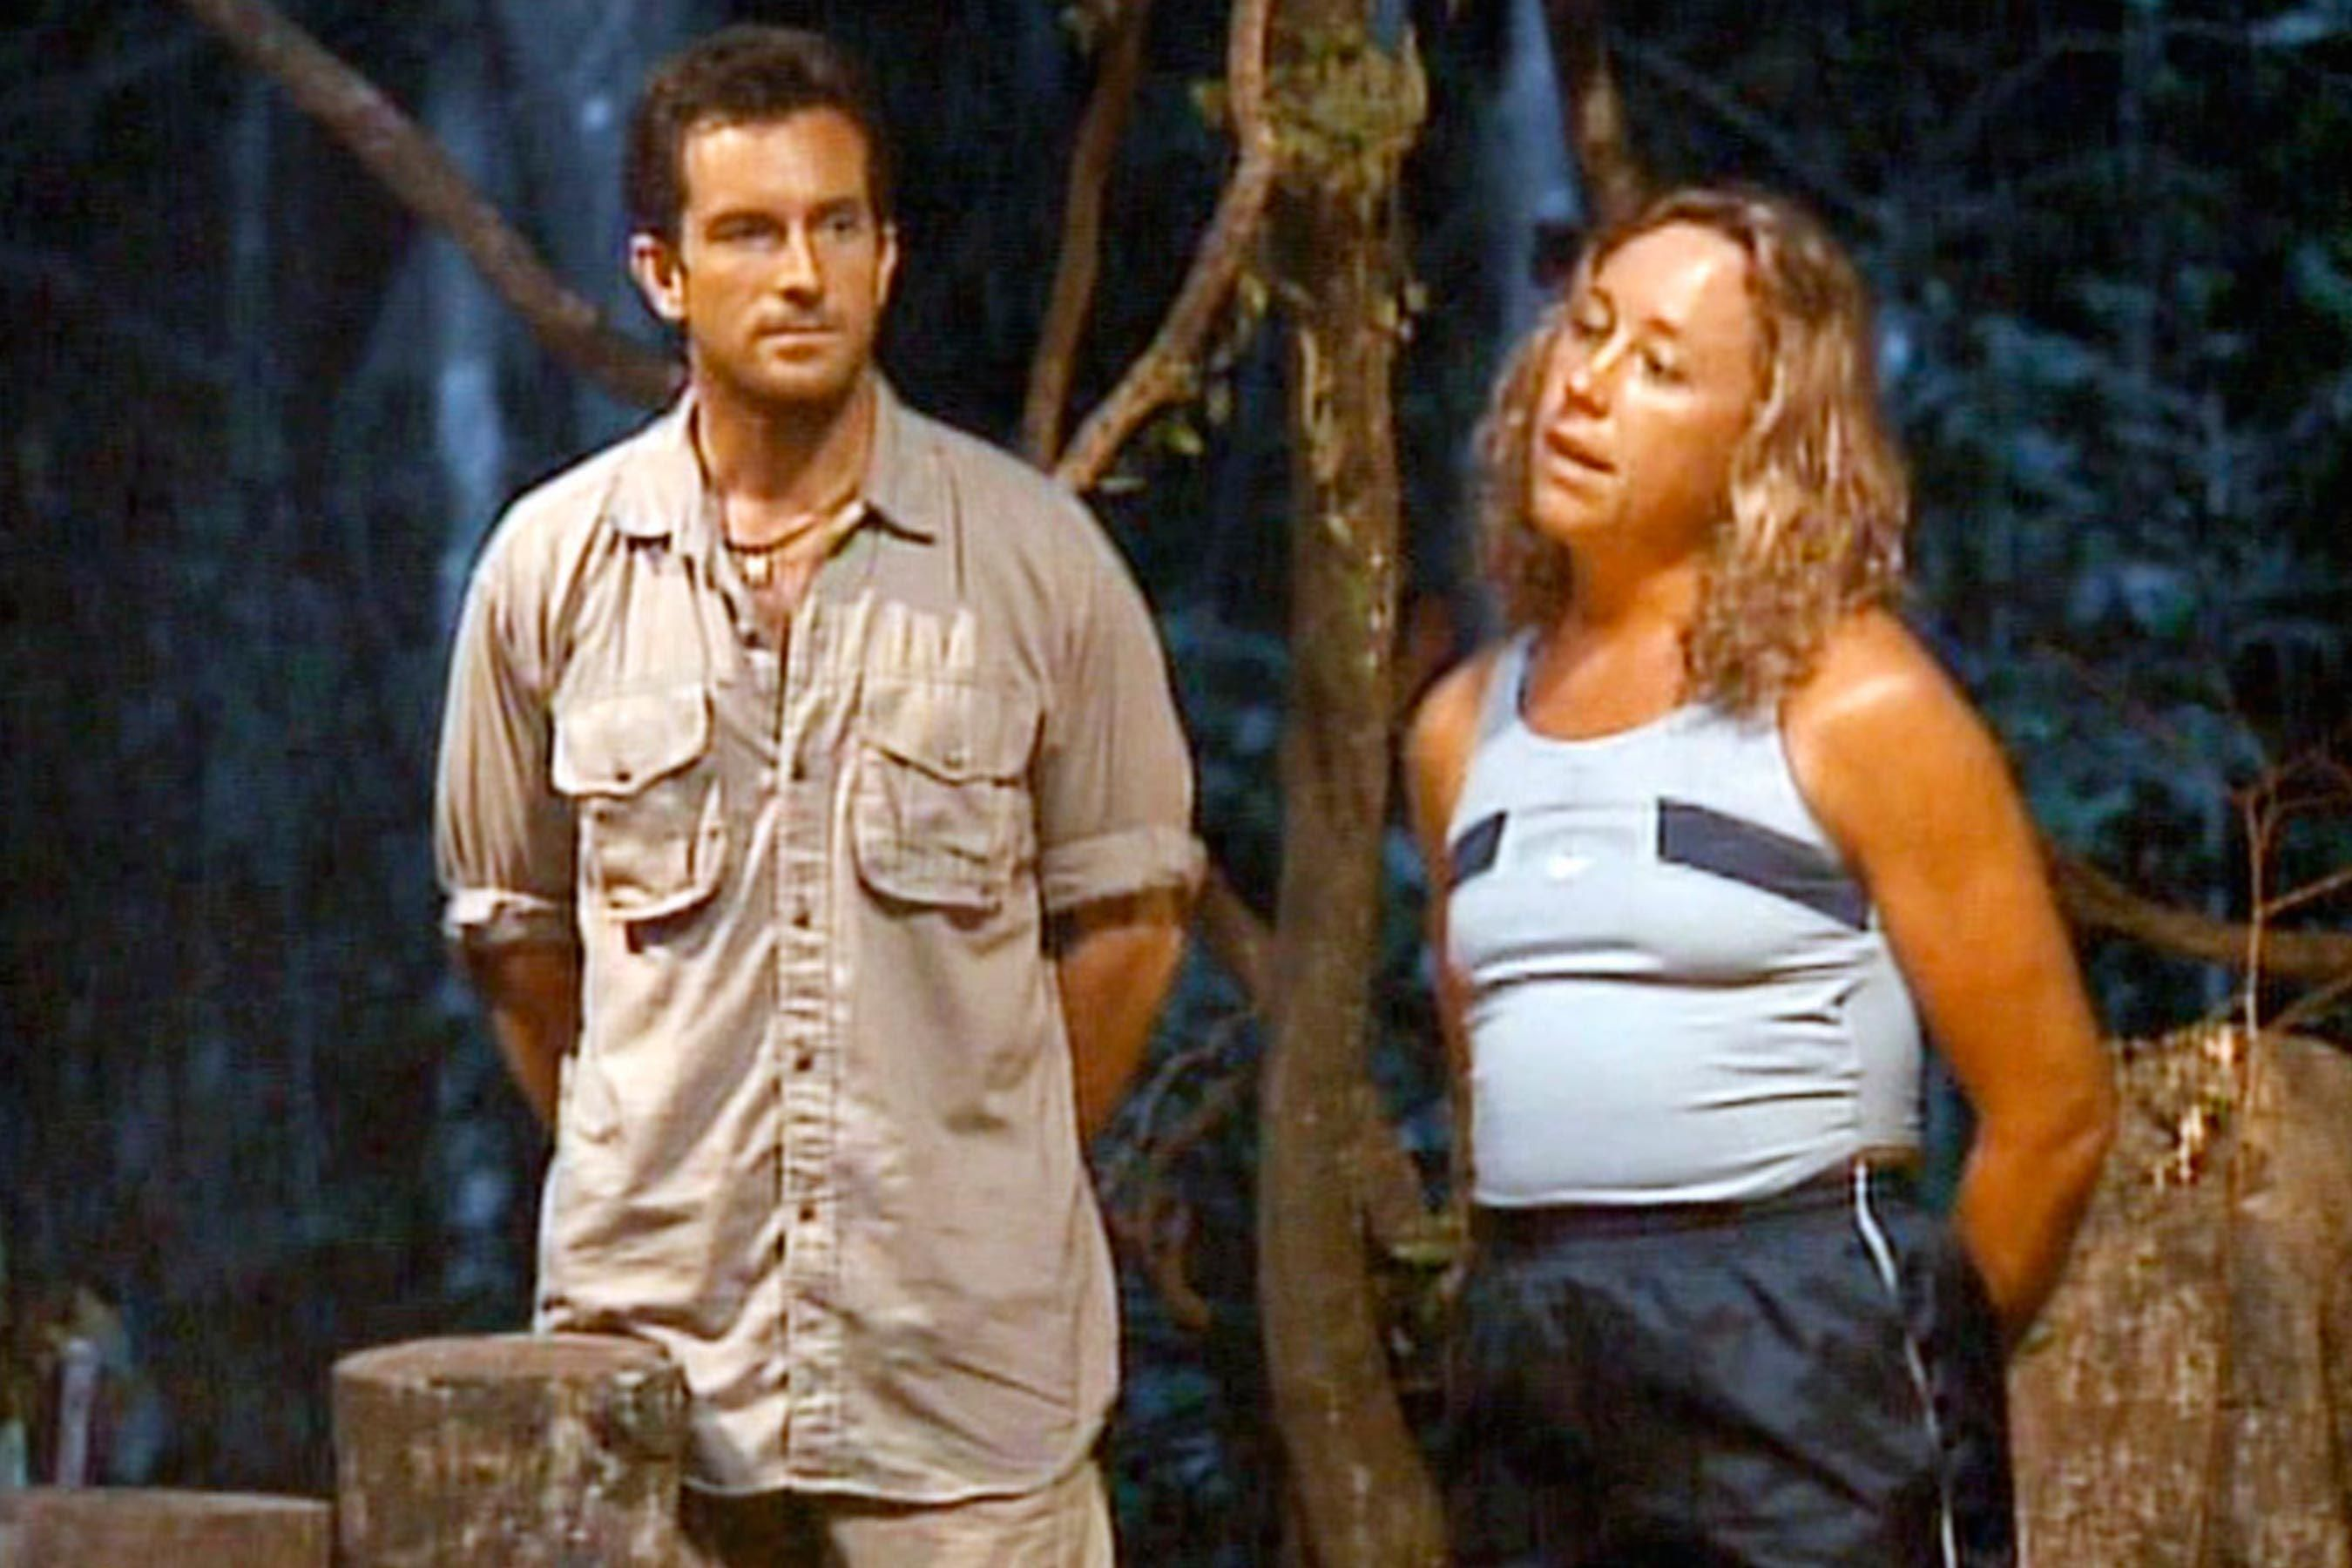 Jeff Probst and Sue Hawk